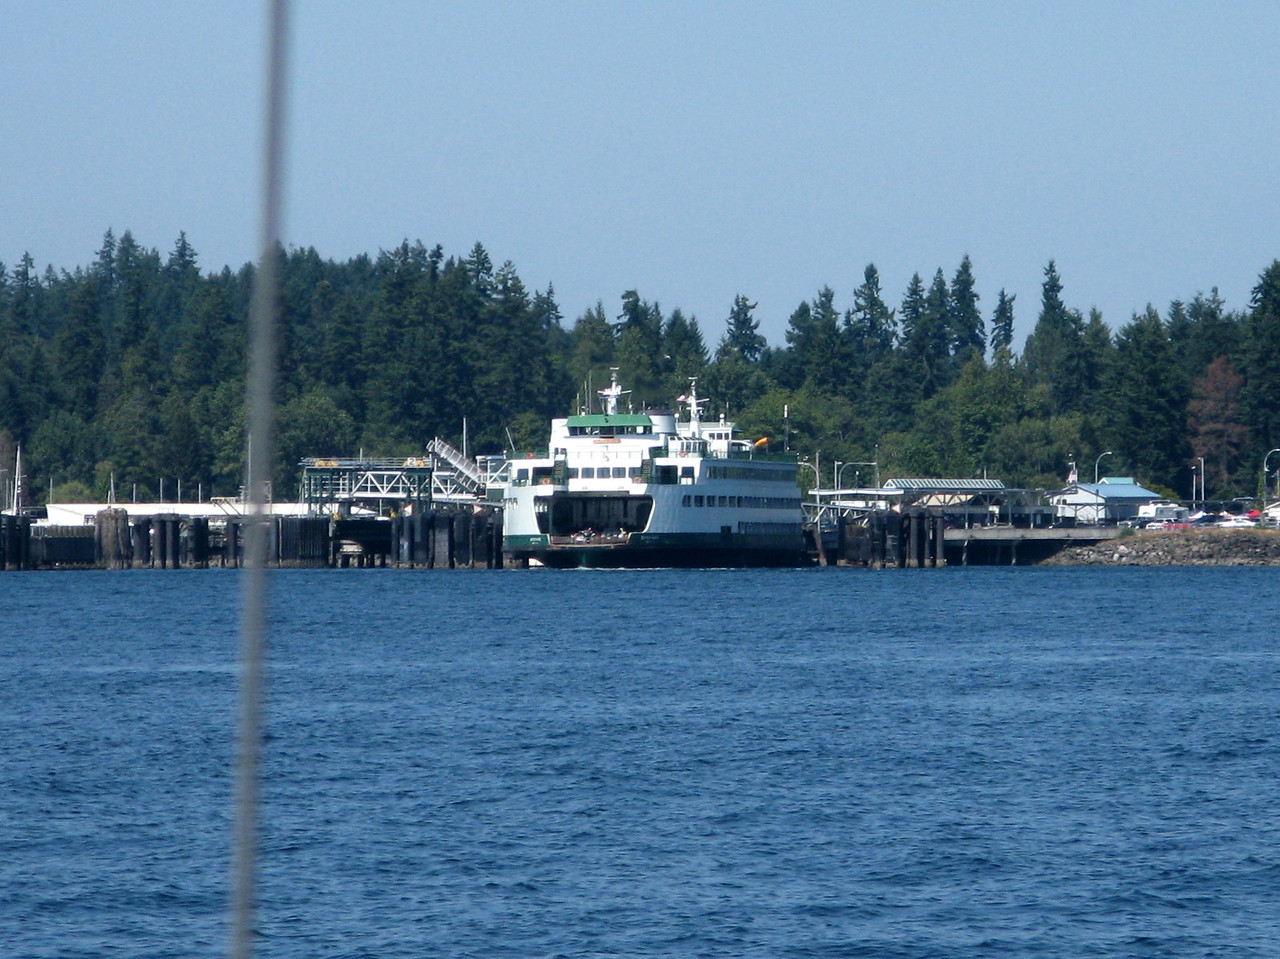 A ferry at the dock in Kingston.